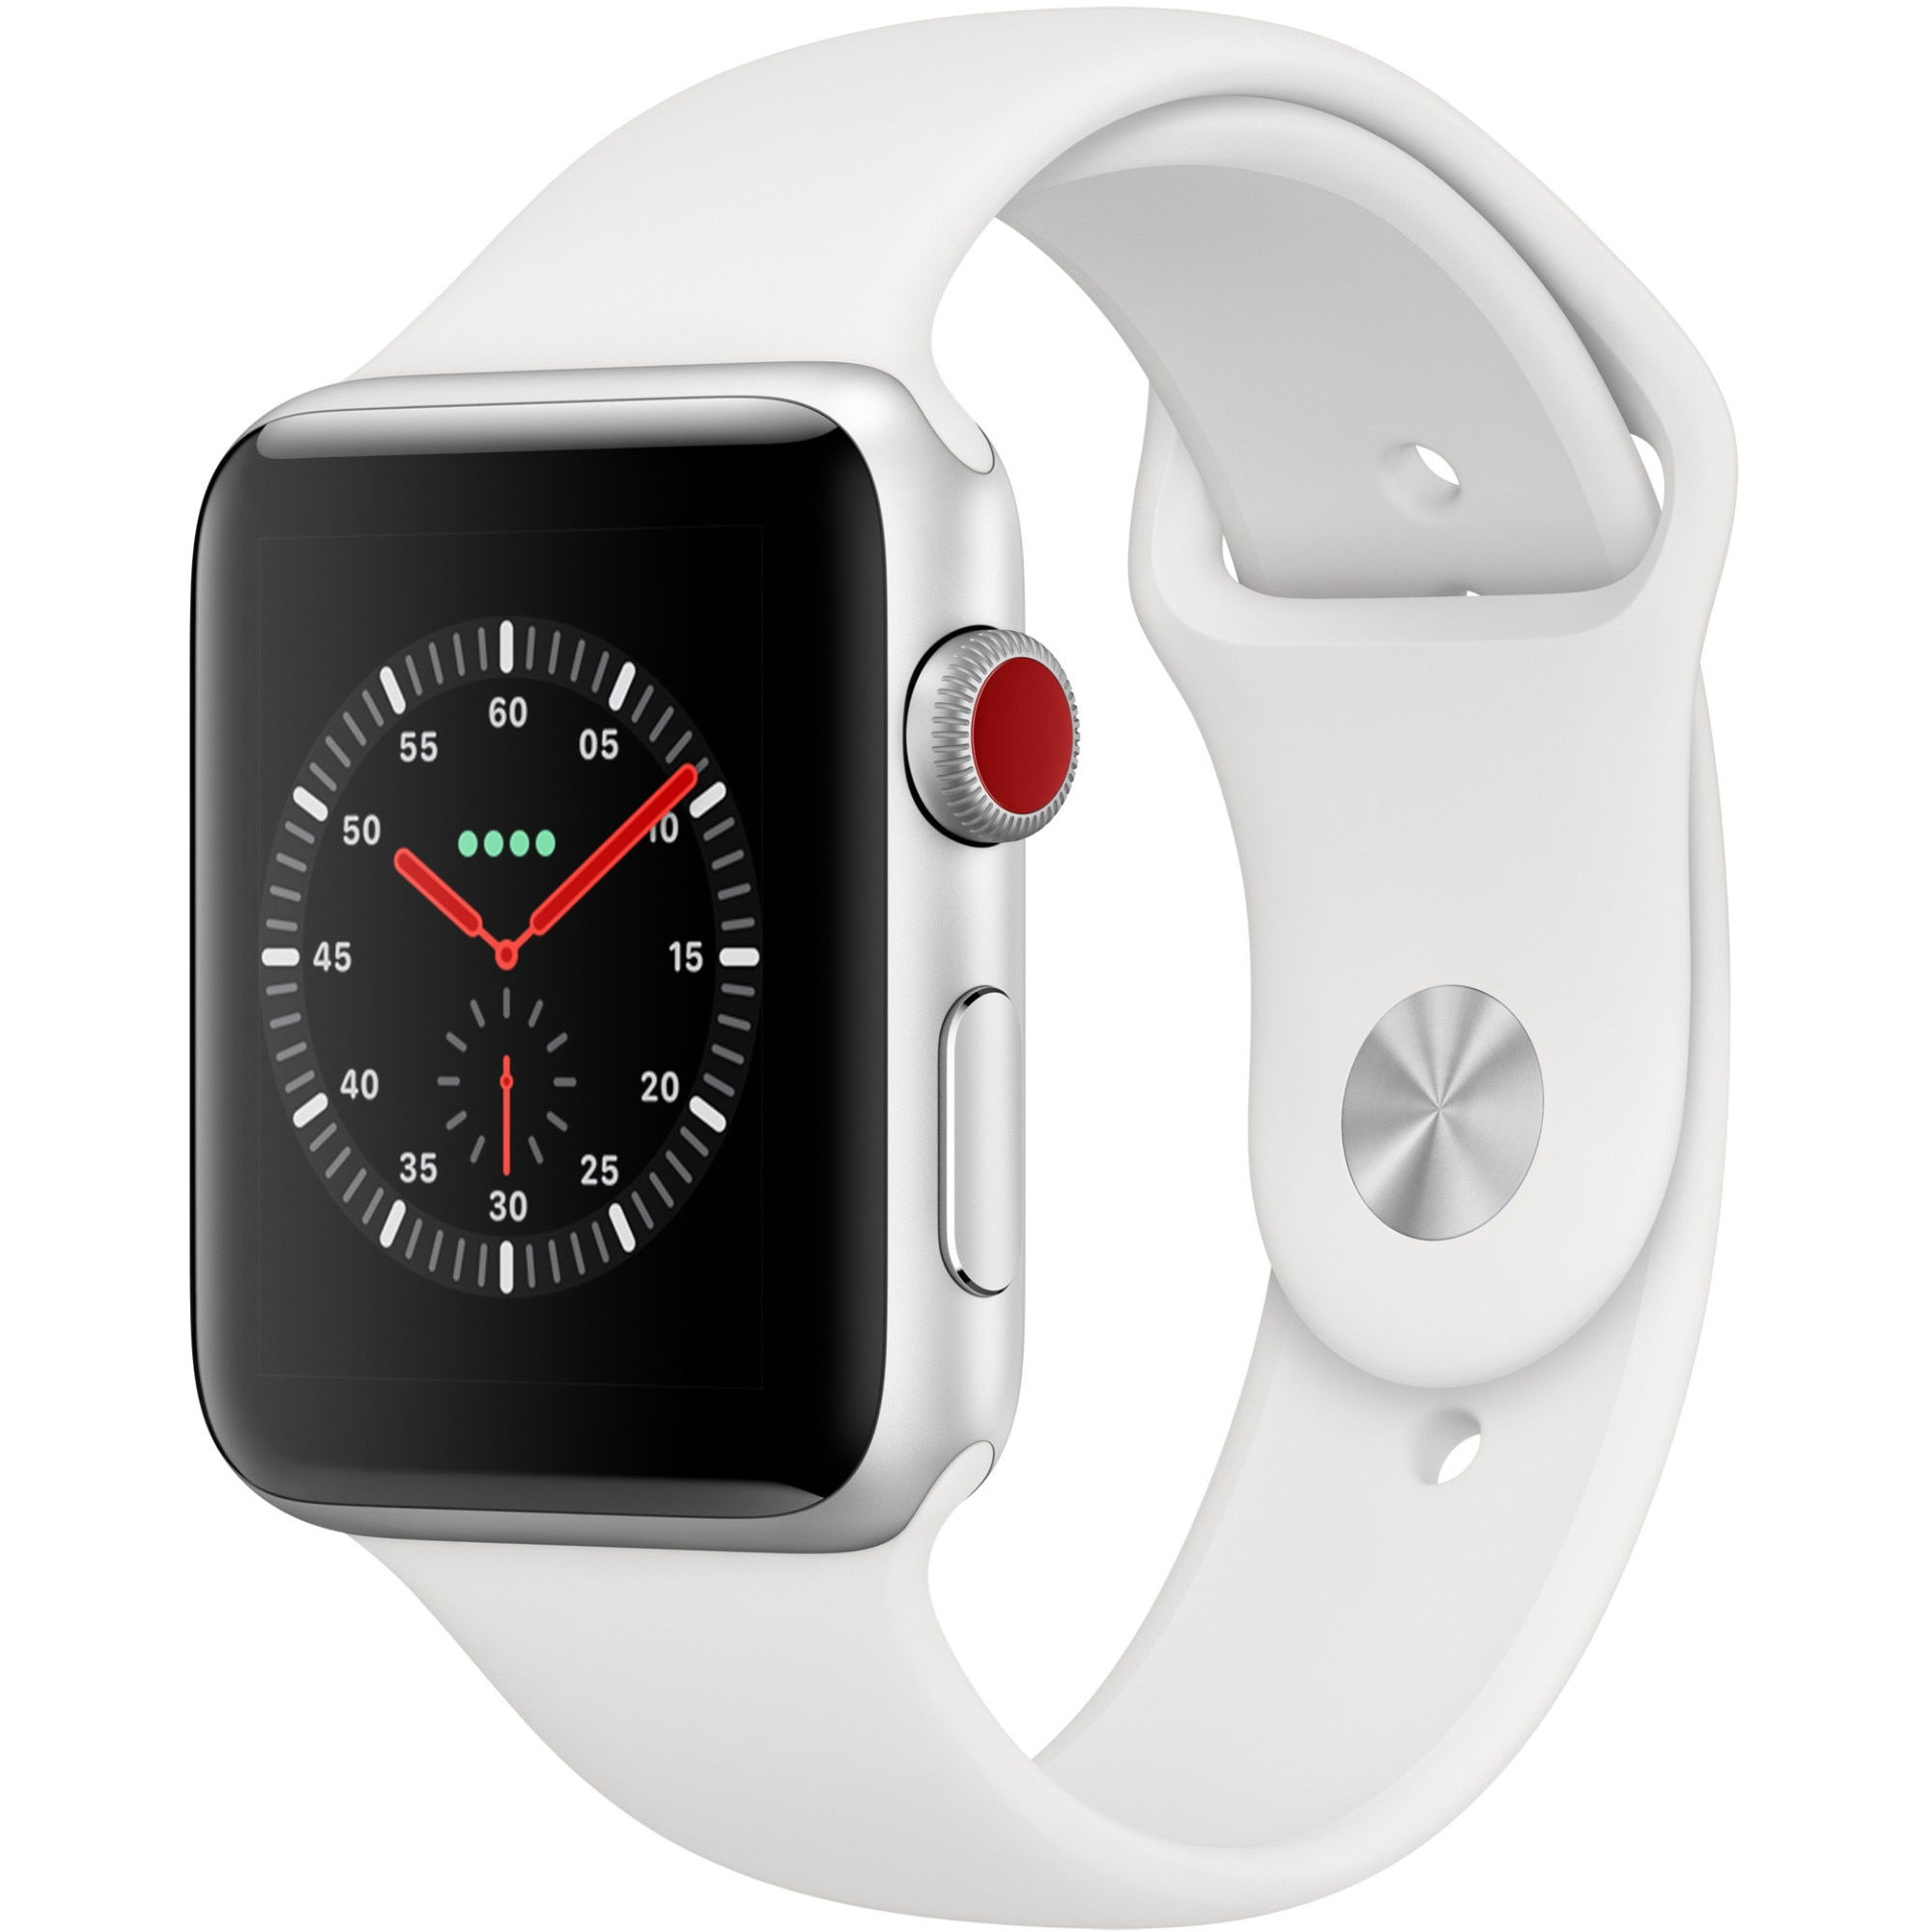 Fotografie Apple Watch 3, GPS, Cellular, Carcasa Silver Aluminium 42mm, White Sport Band